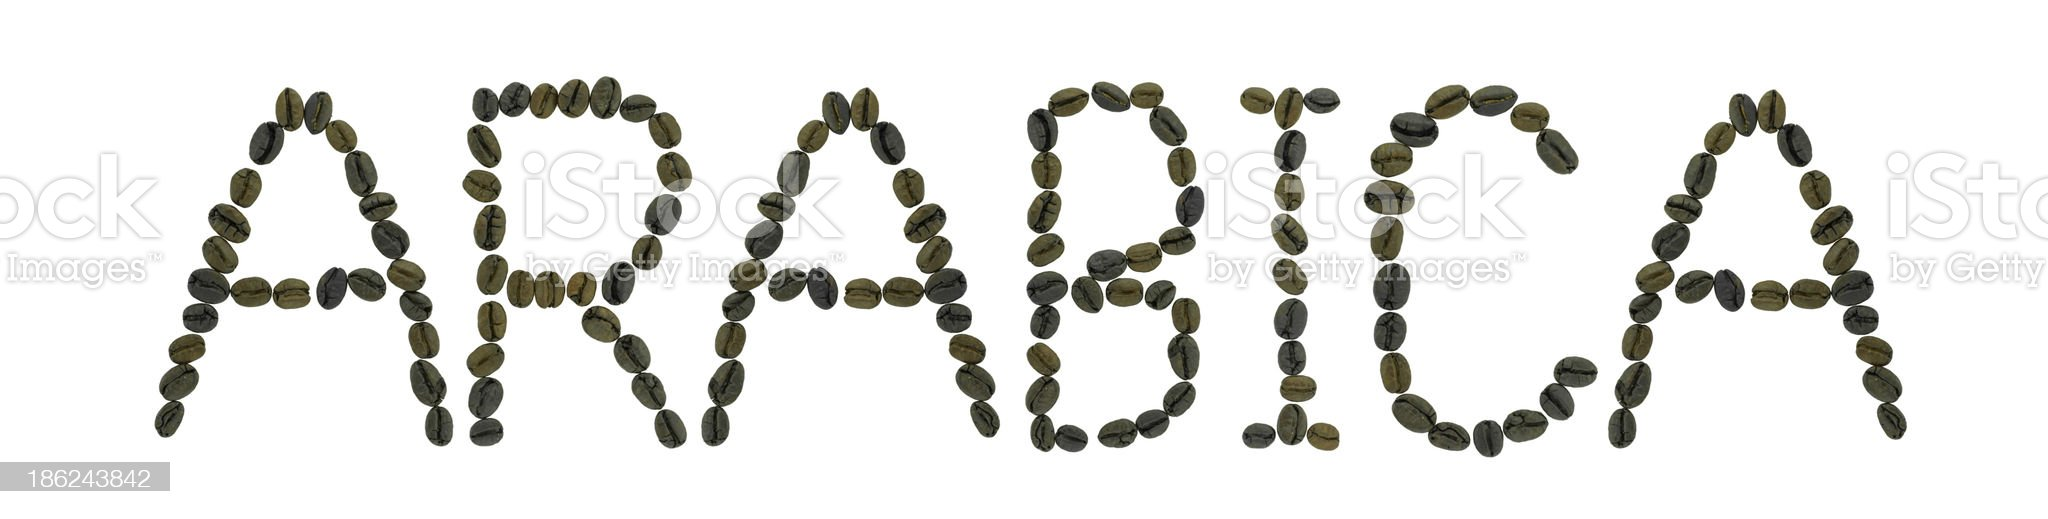 word ARABICA made of coffee beans royalty-free stock photo